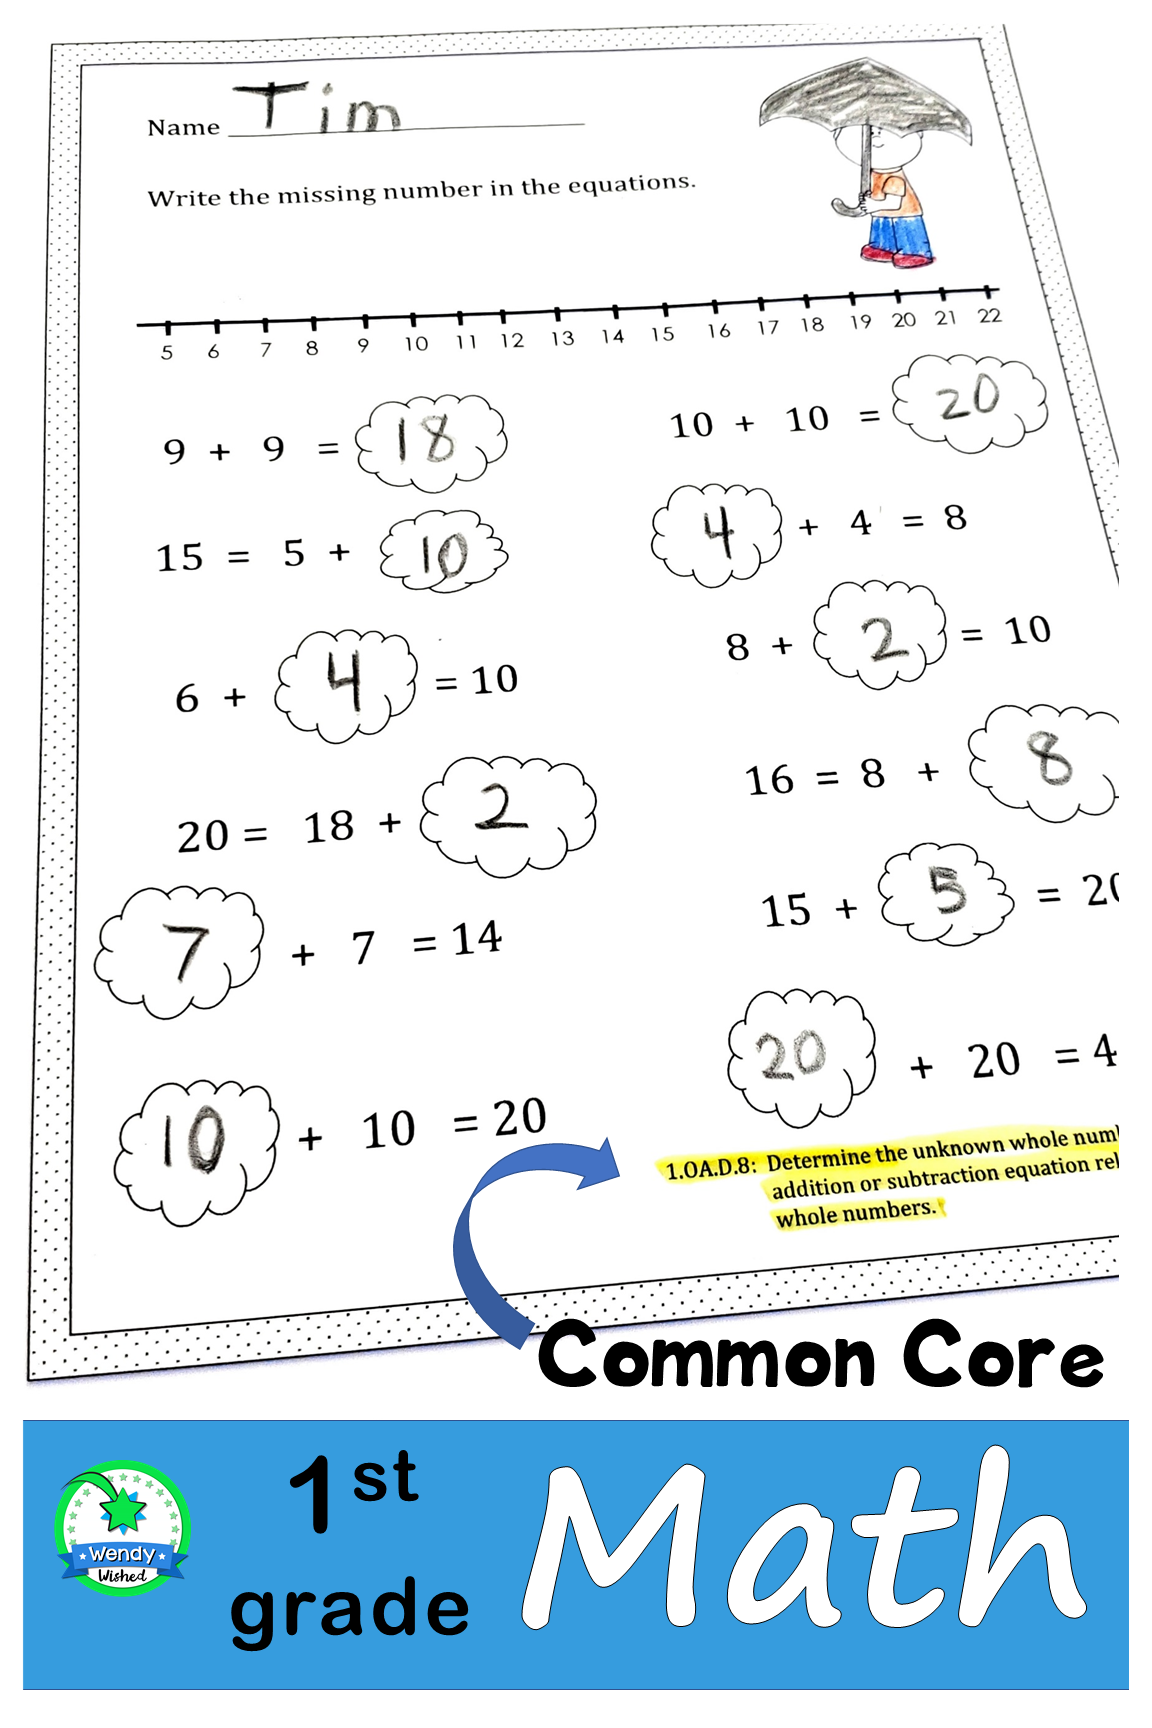 Spring 1st Grade Math Common Core Worksheets Spring Math Worksheets 1st Grade Math Worksheets Writing Lesson Plans